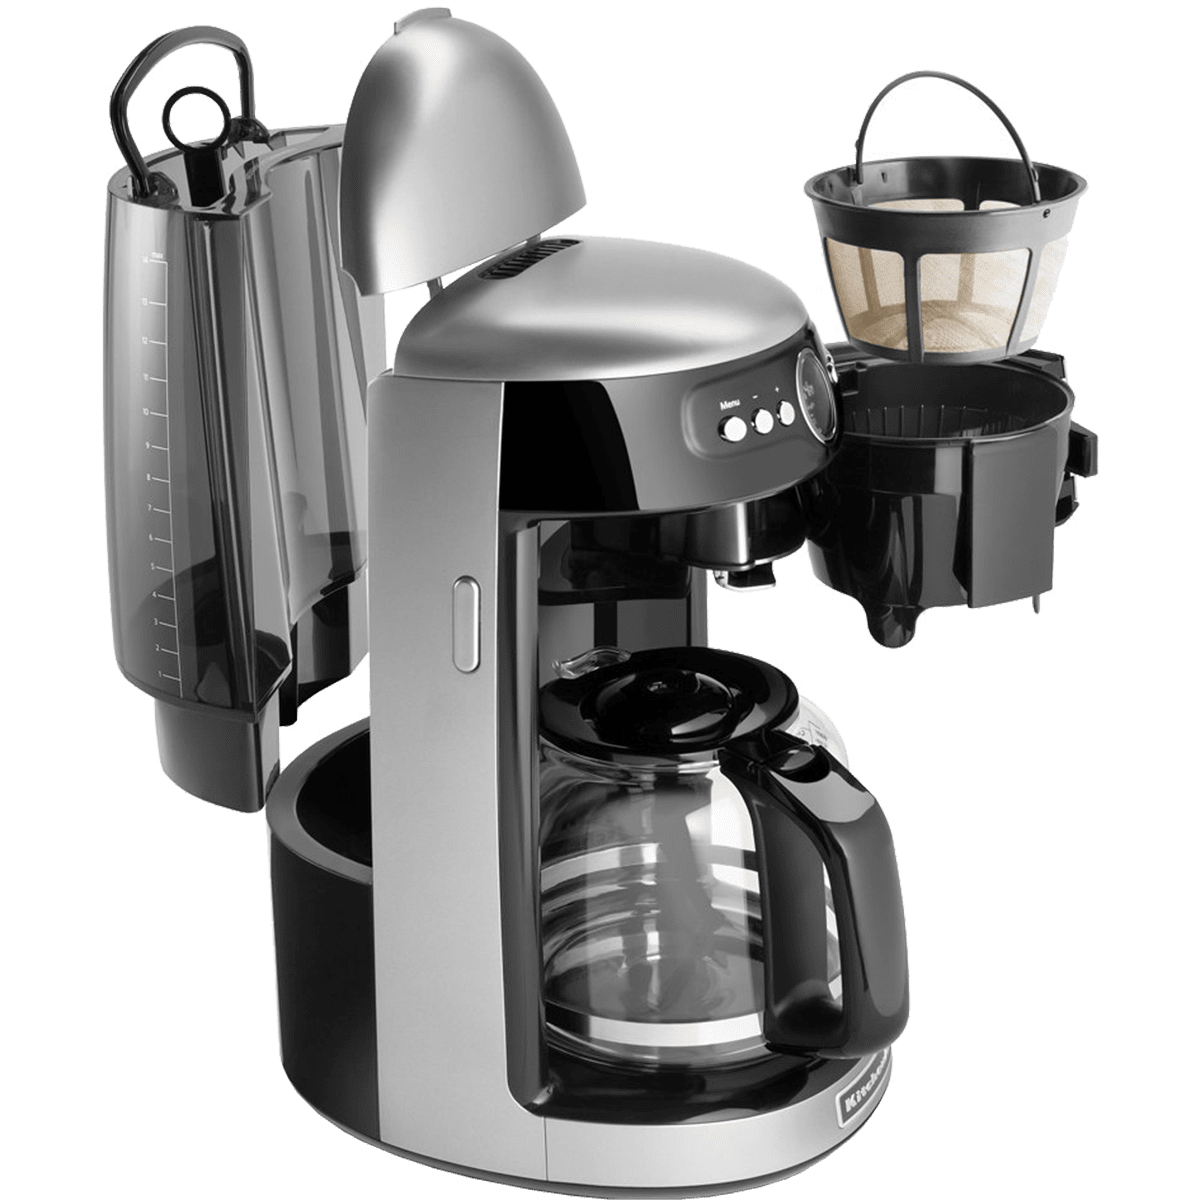 Kitchenaid 14 Cup Glass Carafe Coffee Maker Quench Essentials